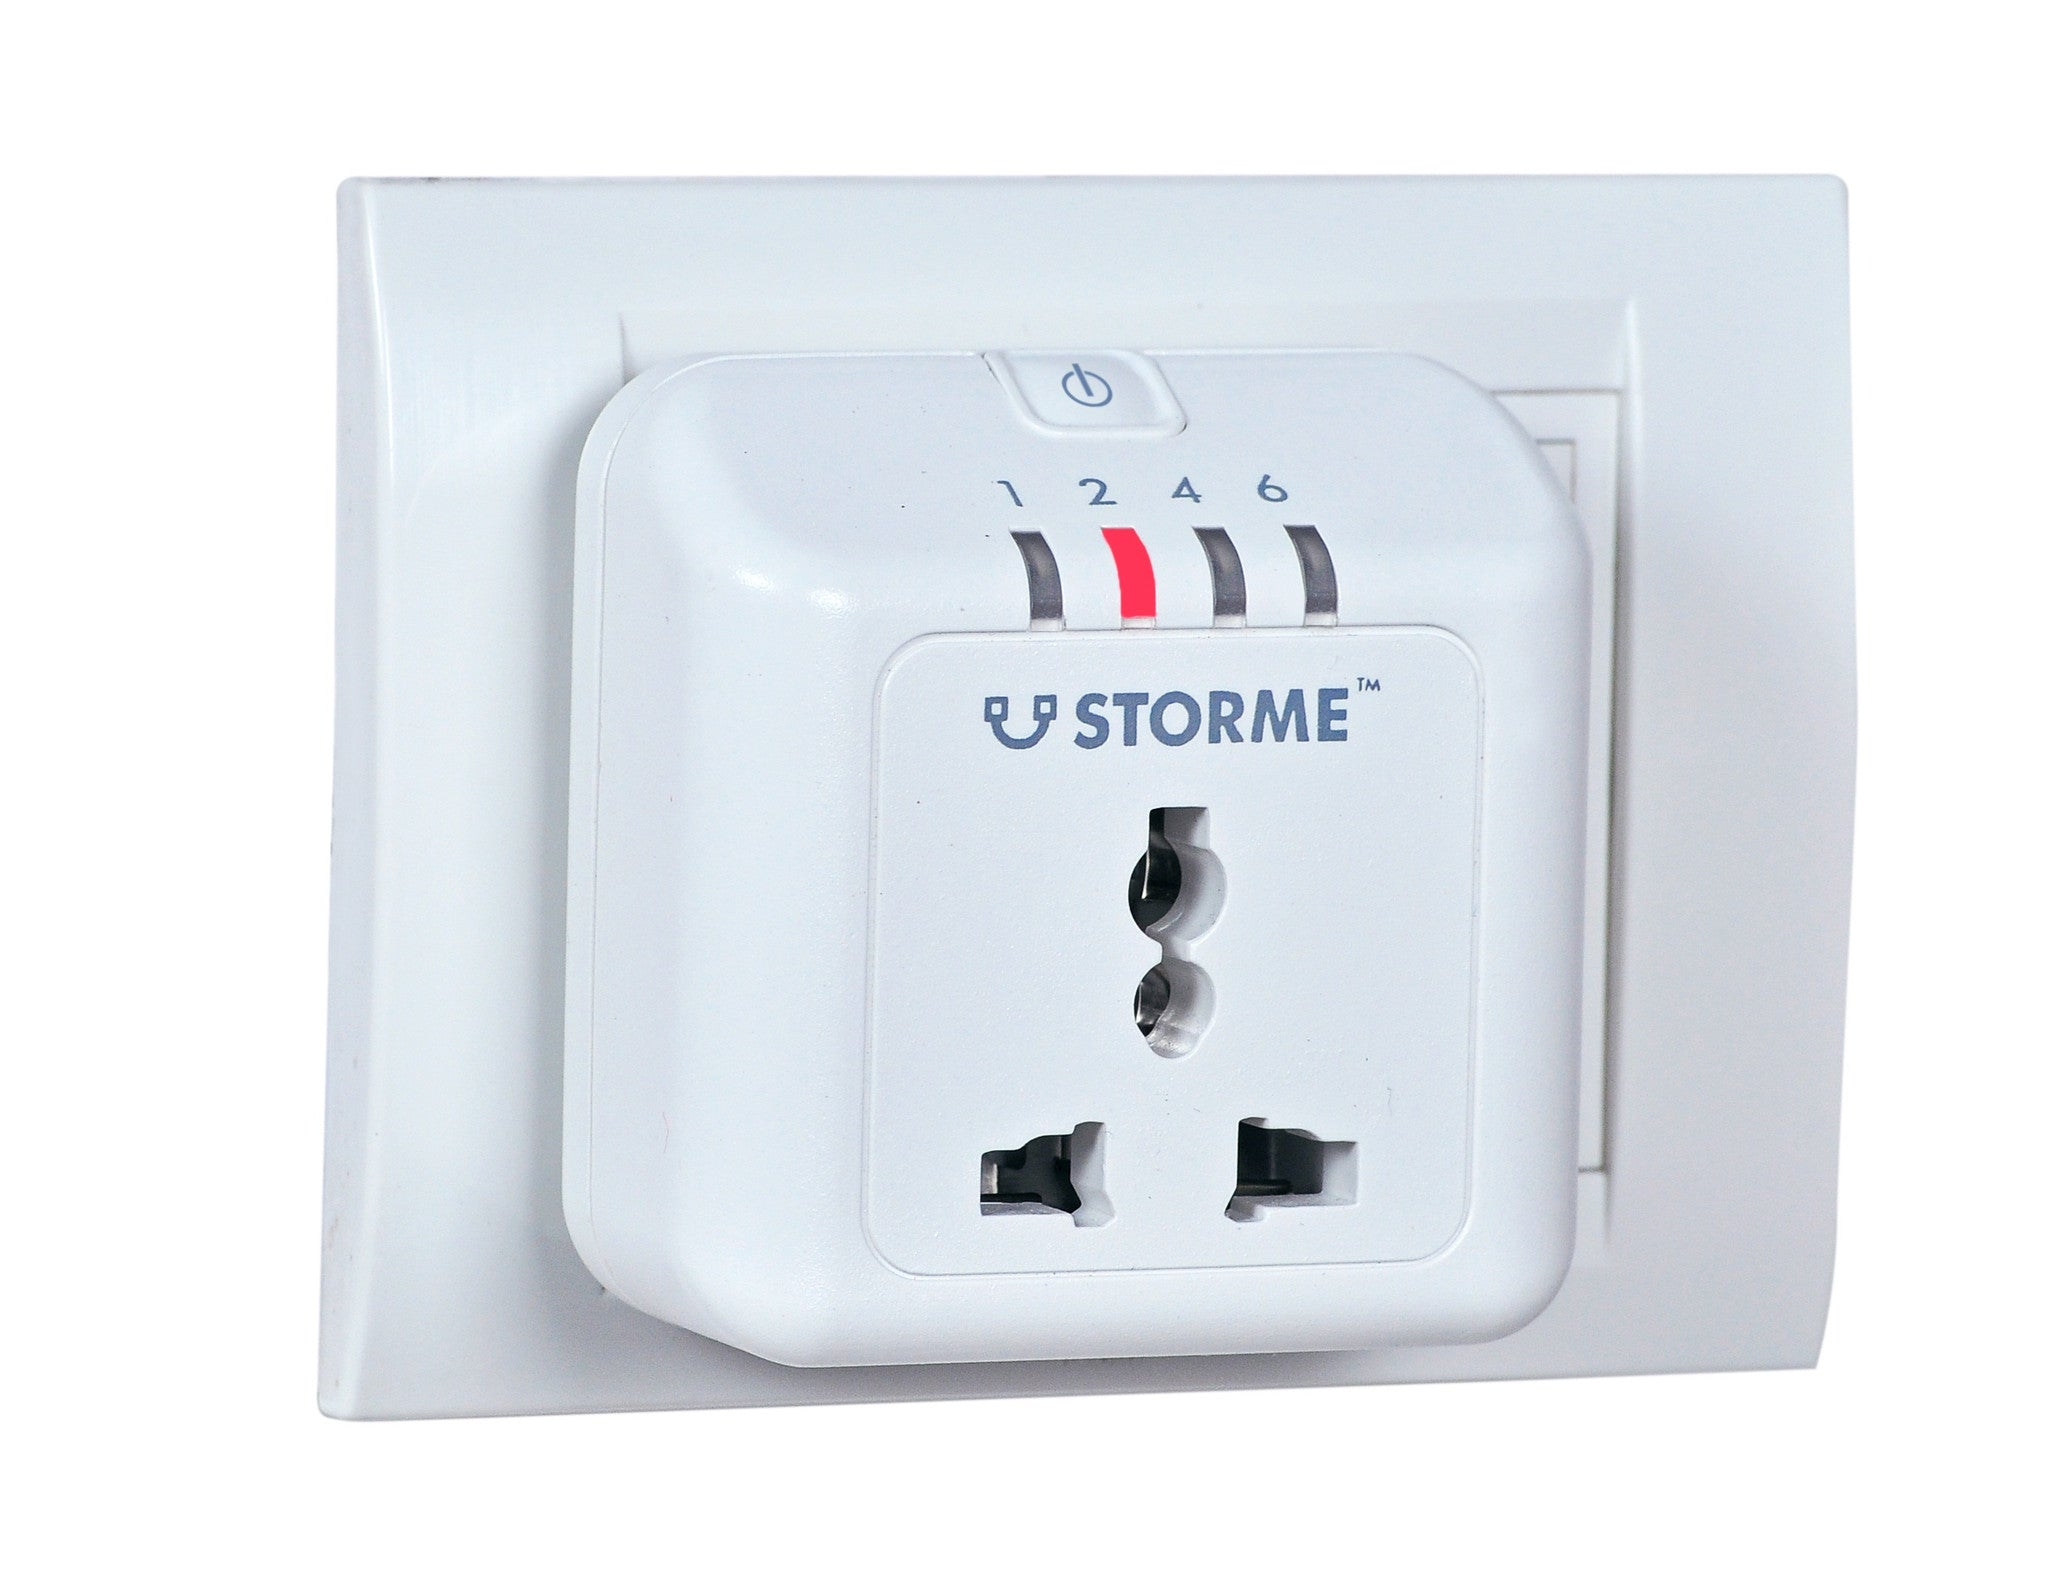 Storme Timer Socket - Automatic Power Cut-off Smart Plug (White, Plastic)